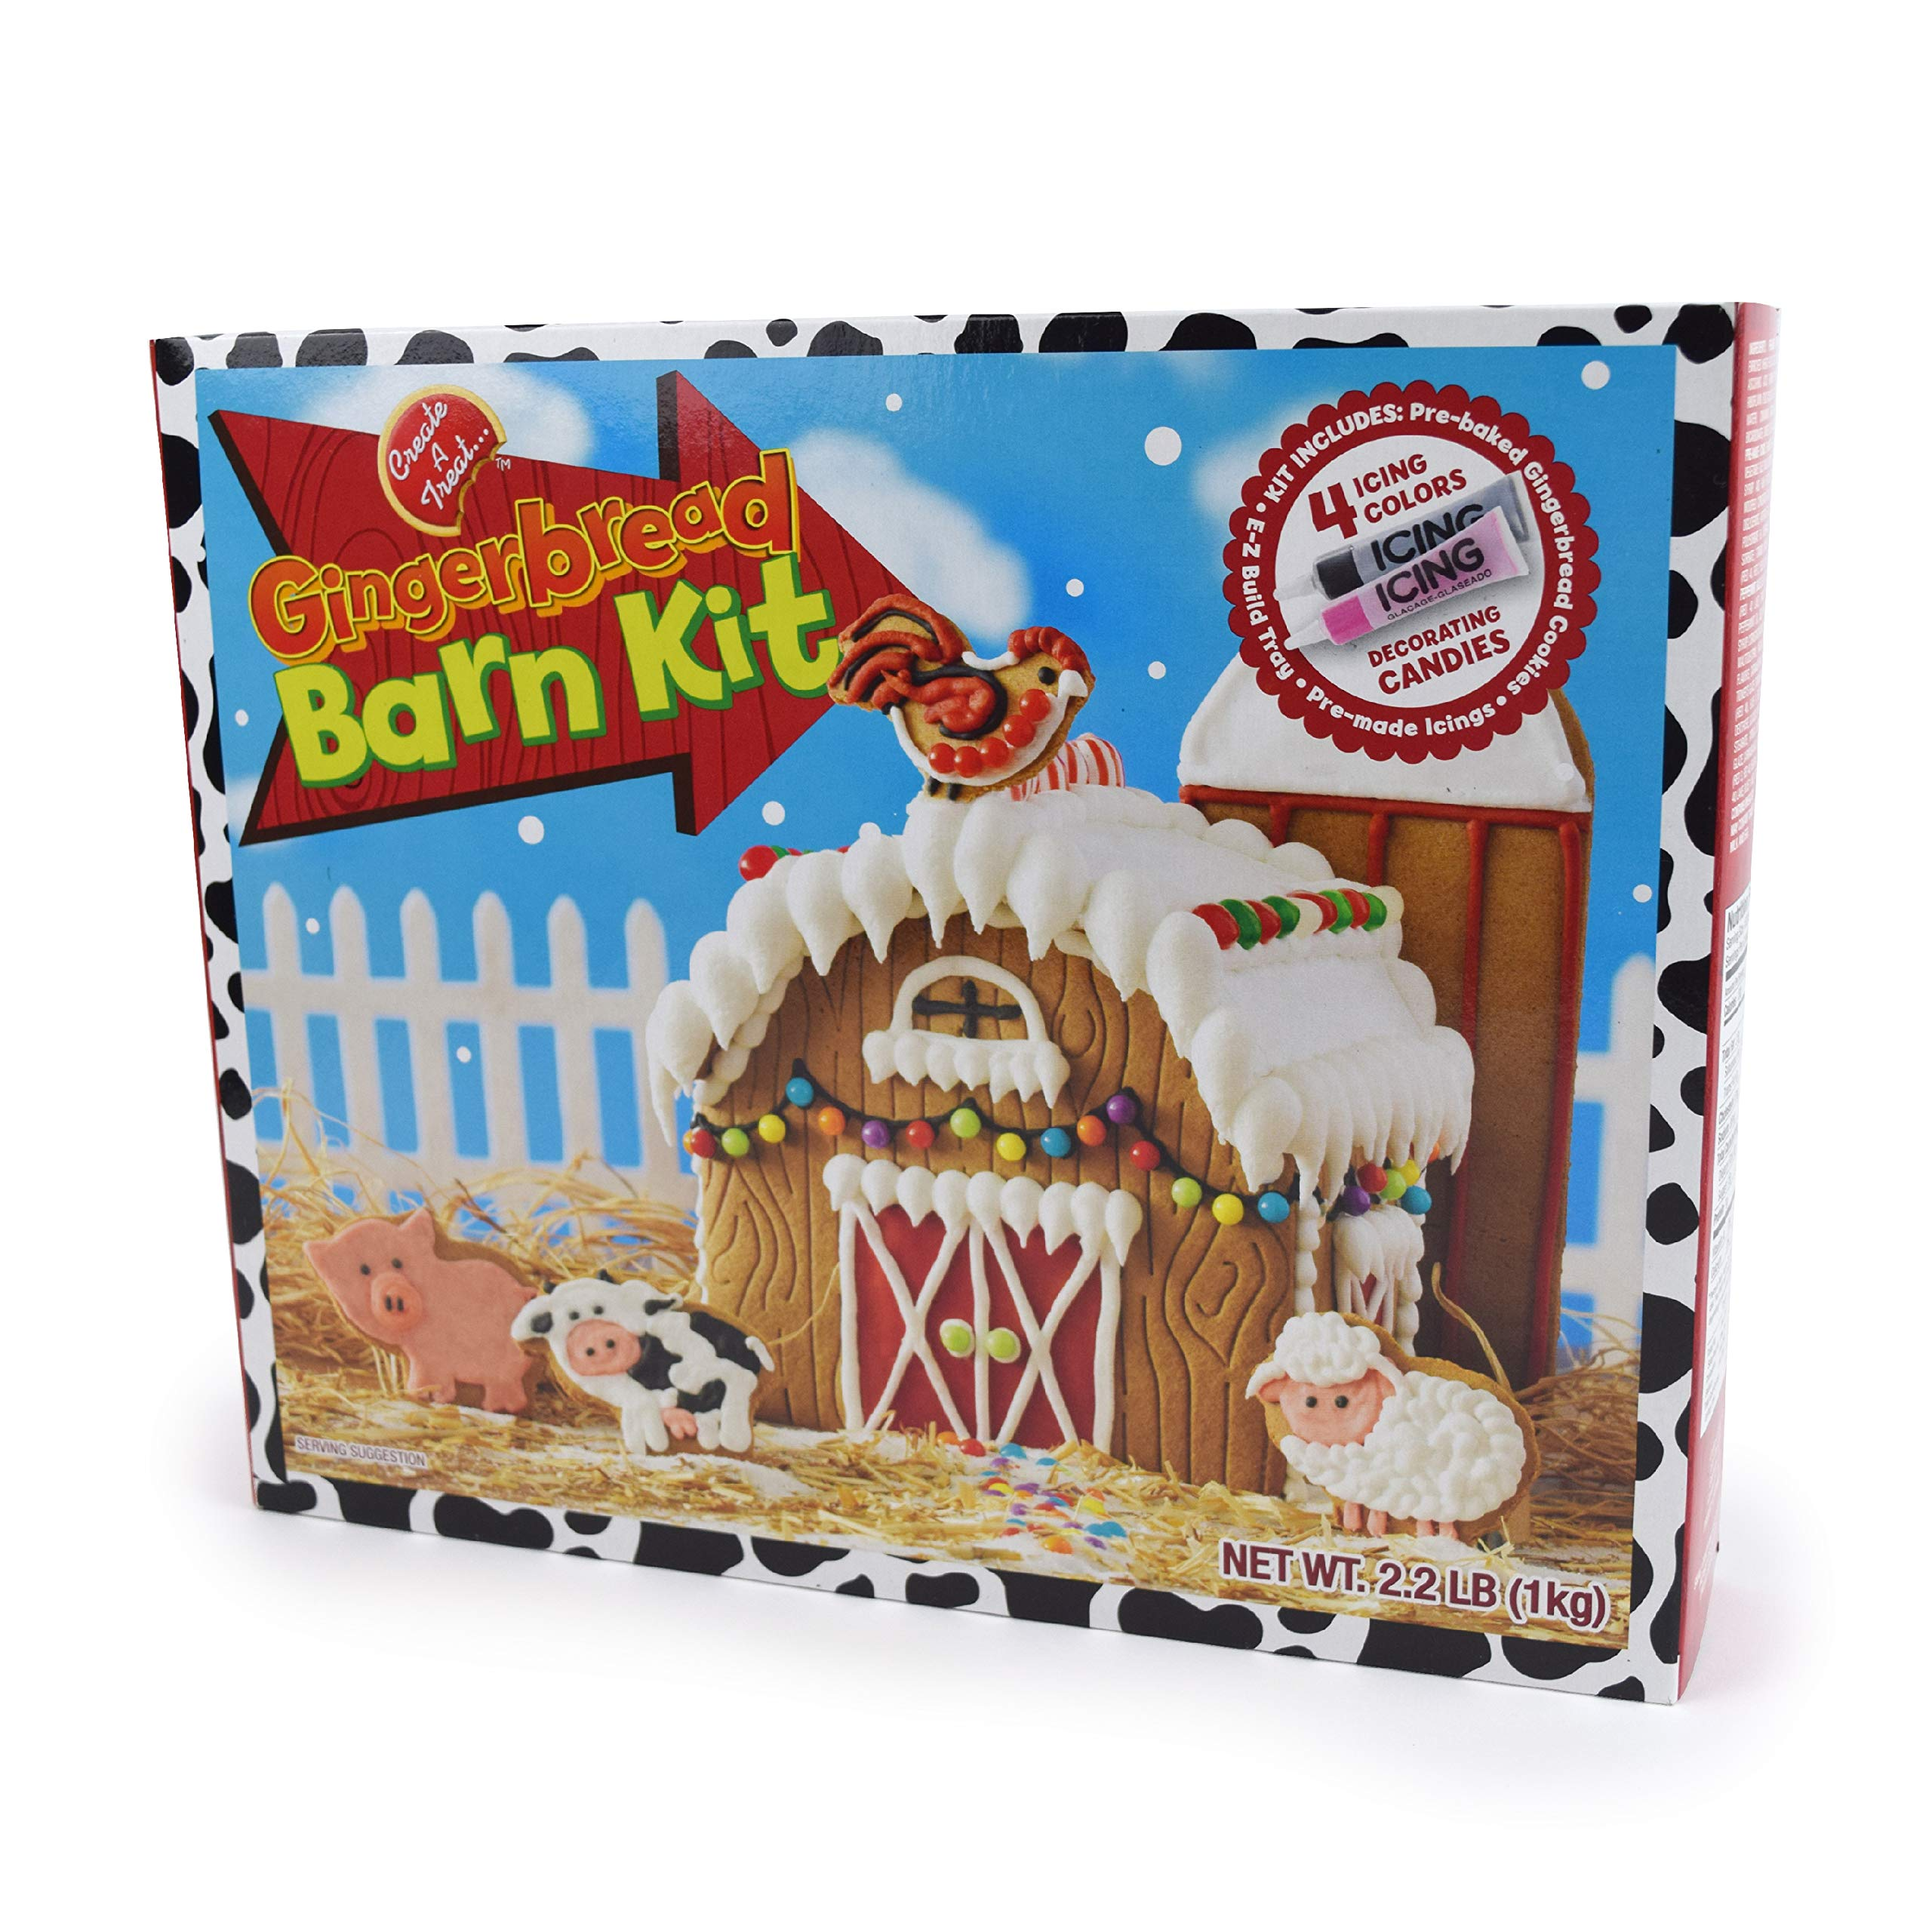 No-Bake Gingerbread House Kit | Christmas Barn with Gingerbread Farm Animal Cookies, Candy, Icing and Instructions Included